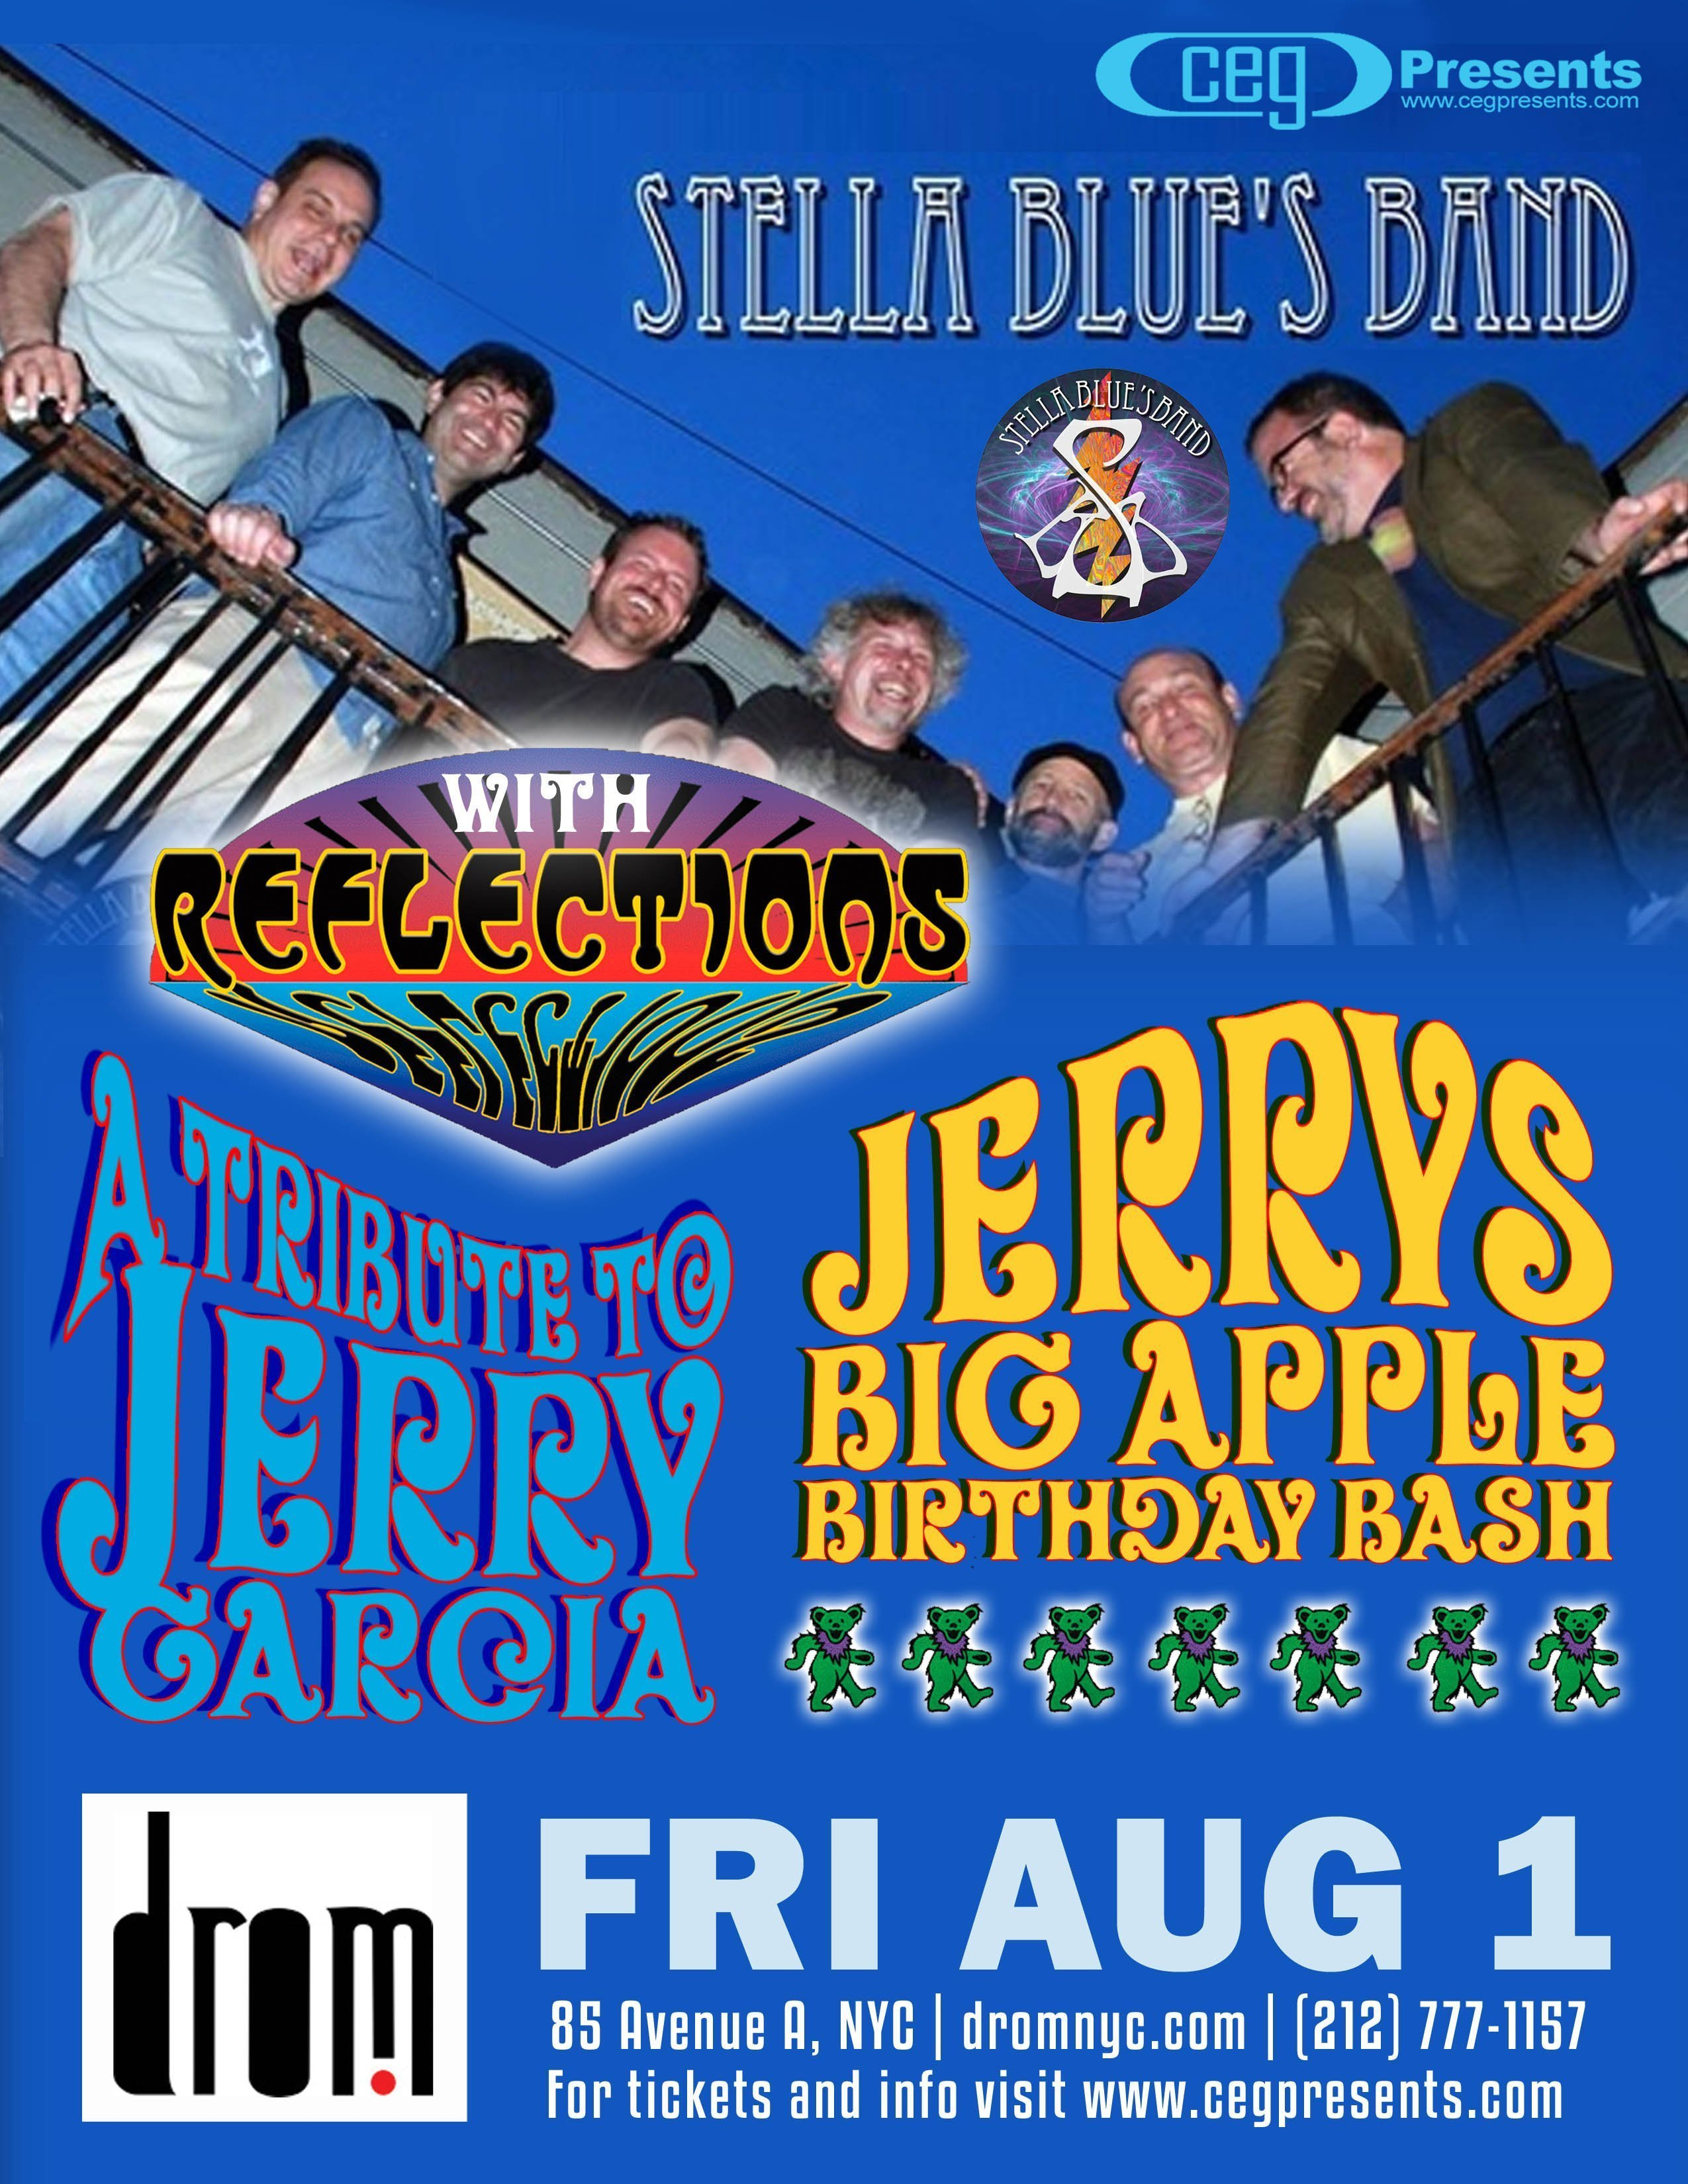 jerry-garcia-birthday-party-nyc-ticket-giveaway-stella-blues-reflections-2014